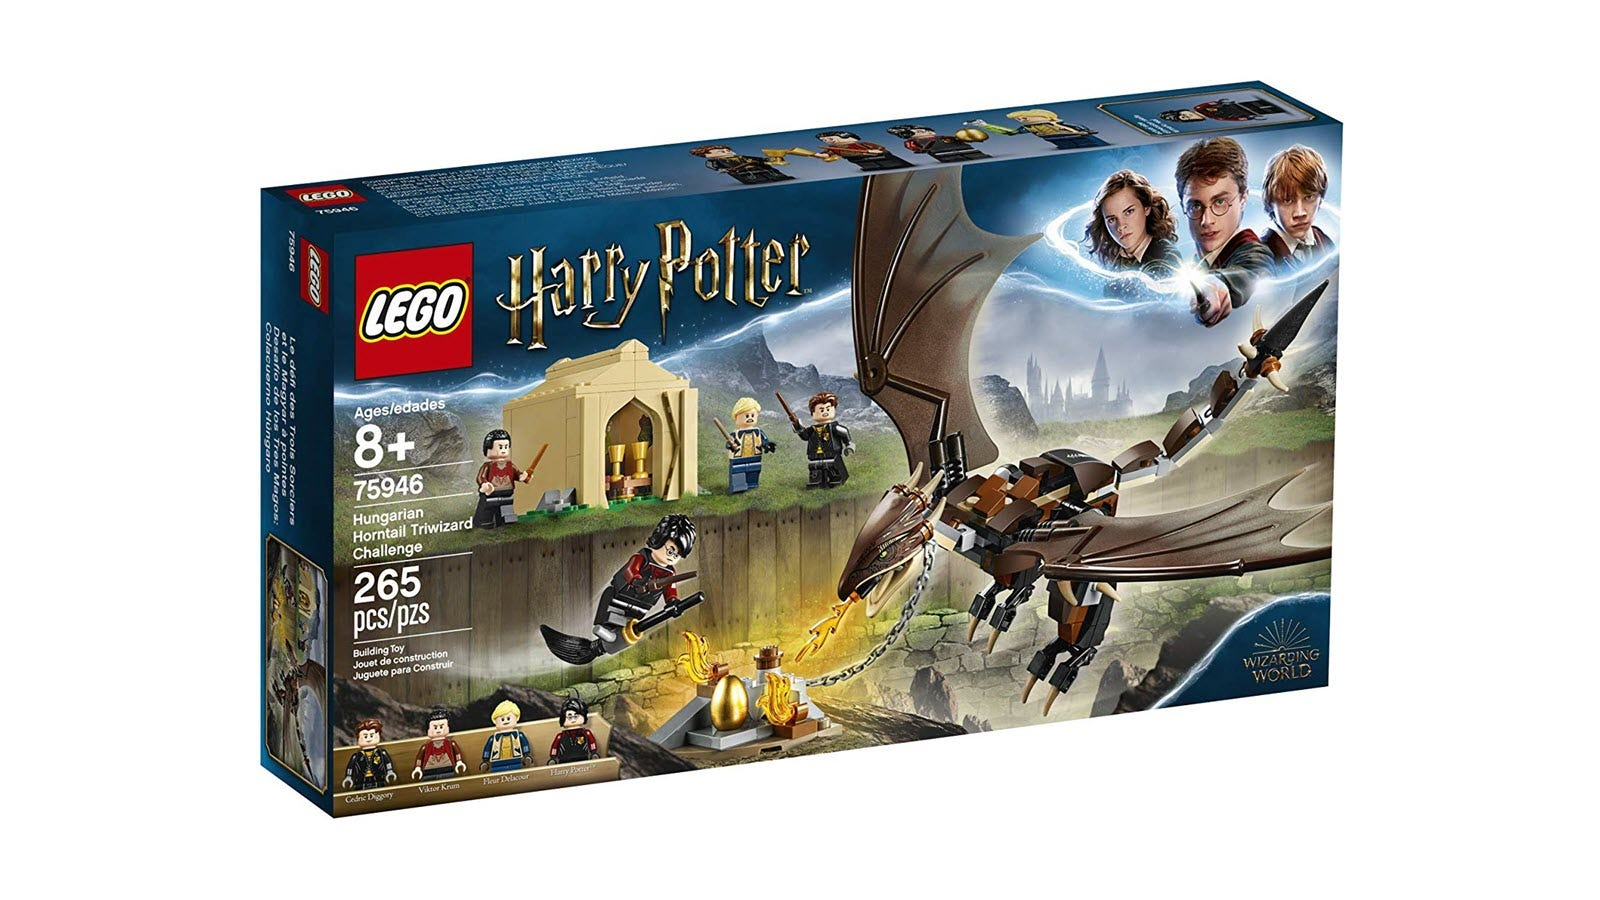 A box featuring LEGO Harry Potter flying on a broom near a LEGO Dragon